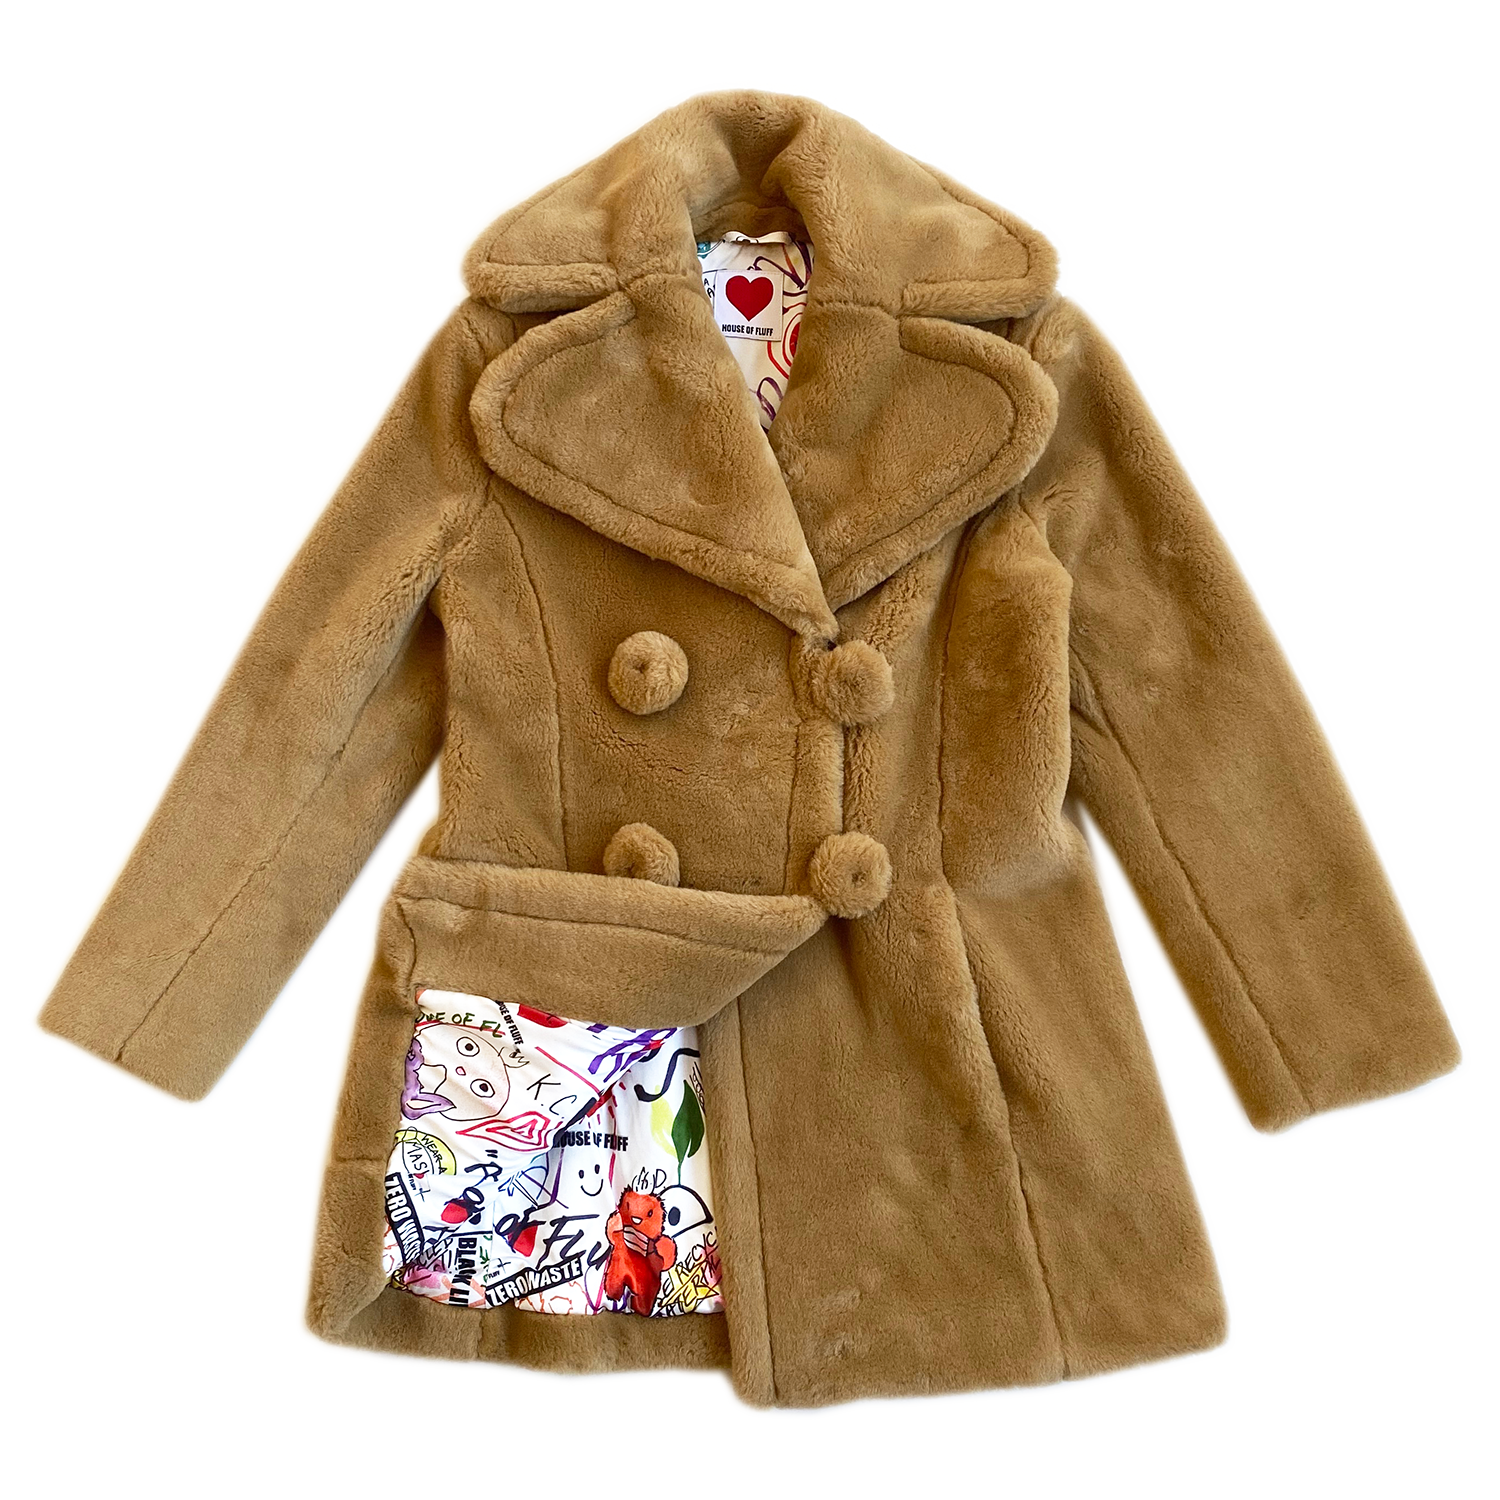 products/biofur_camelpeacoat_front_open.png